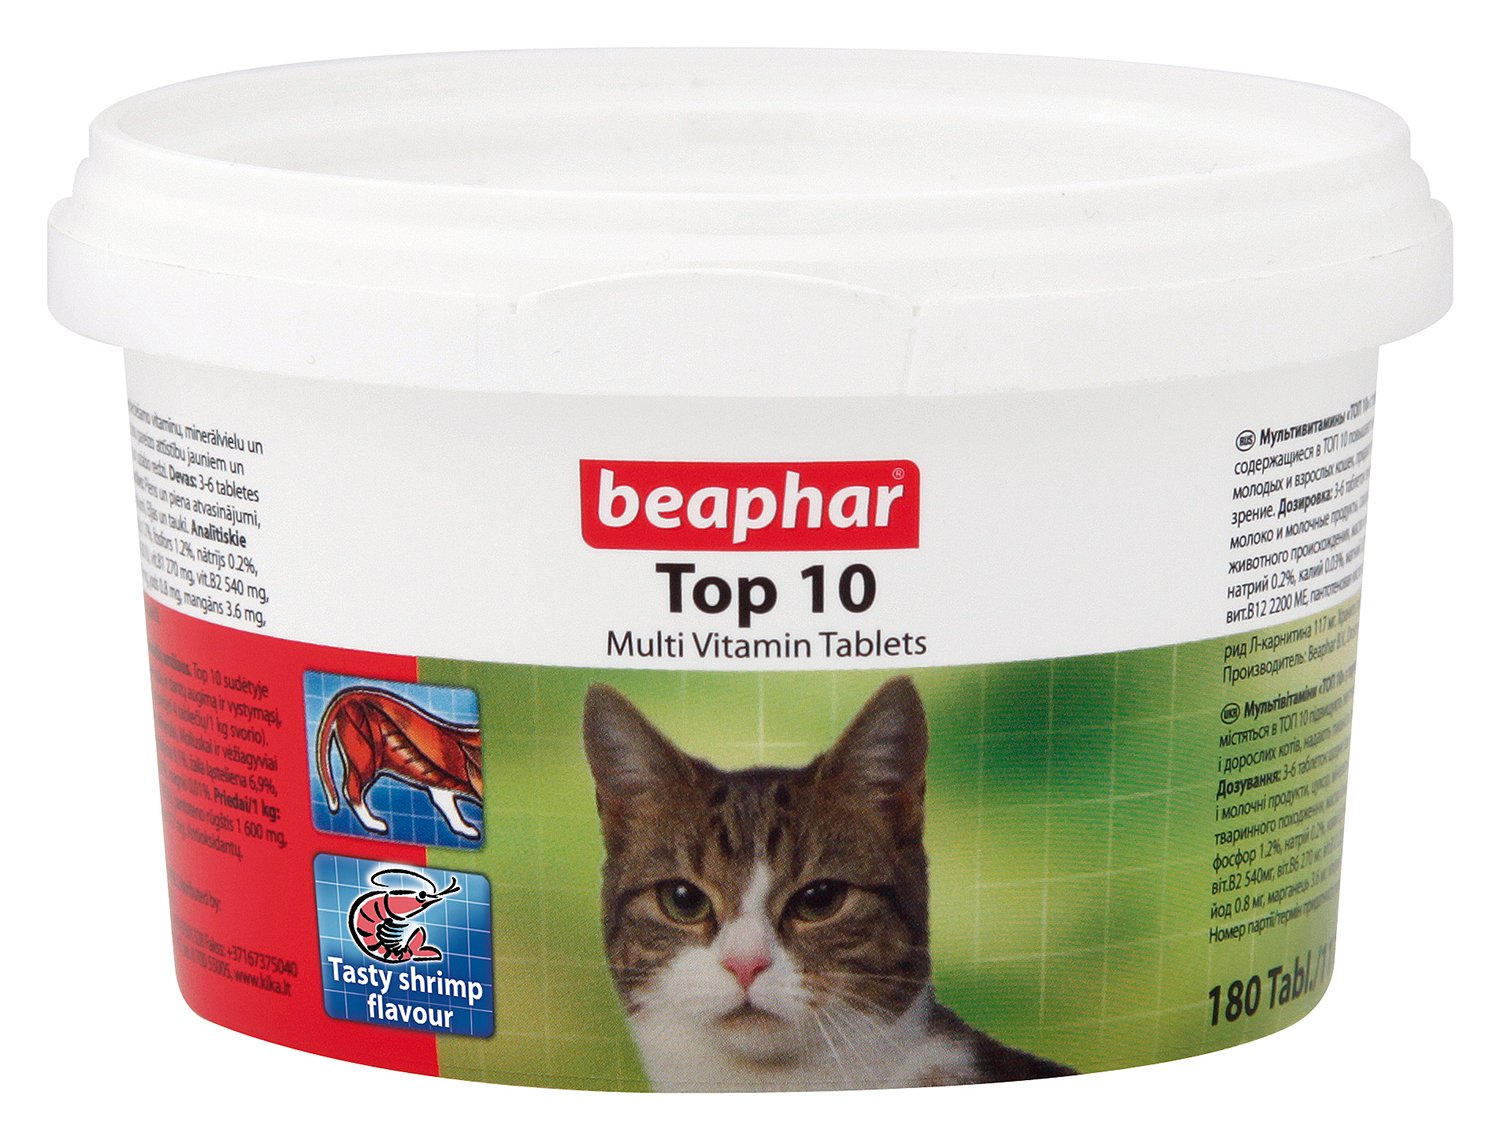 BEAPHAR TOP 10 CAT MULTI VITAMIN TABLETS 180 TABLETS / 117g